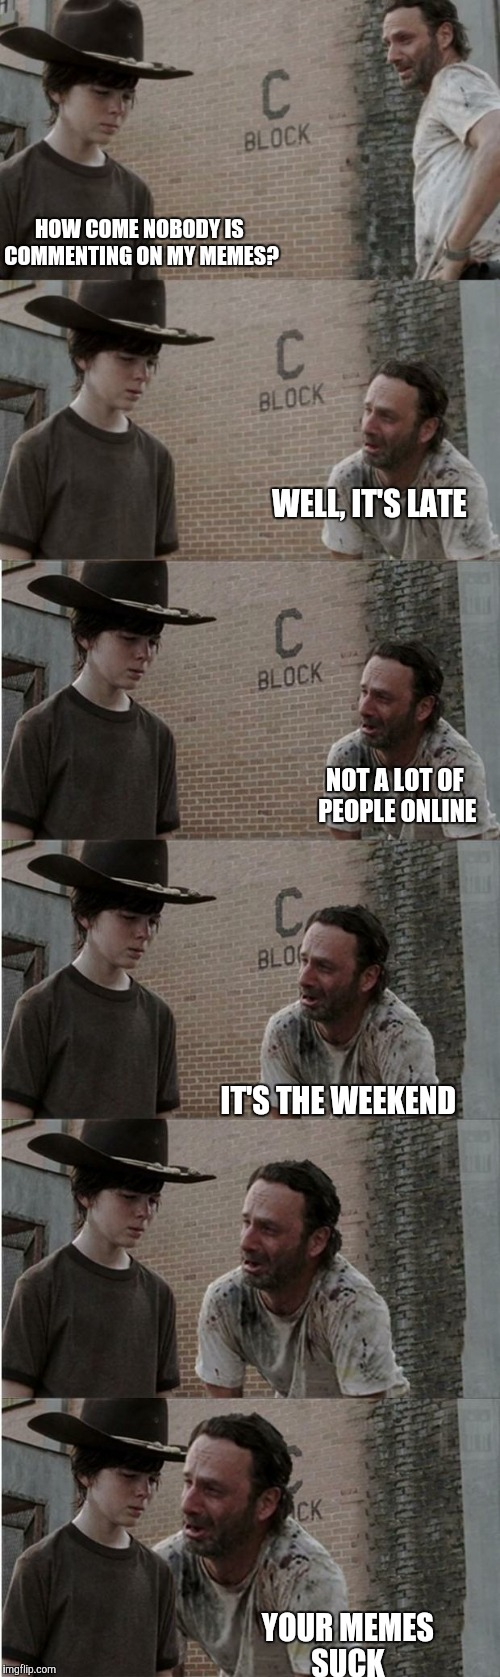 Rick and Carl Longer Meme | HOW COME NOBODY IS COMMENTING ON MY MEMES? YOUR MEMES SUCK WELL, IT'S LATE NOT A LOT OF PEOPLE ONLINE IT'S THE WEEKEND | image tagged in memes,rick and carl longer | made w/ Imgflip meme maker